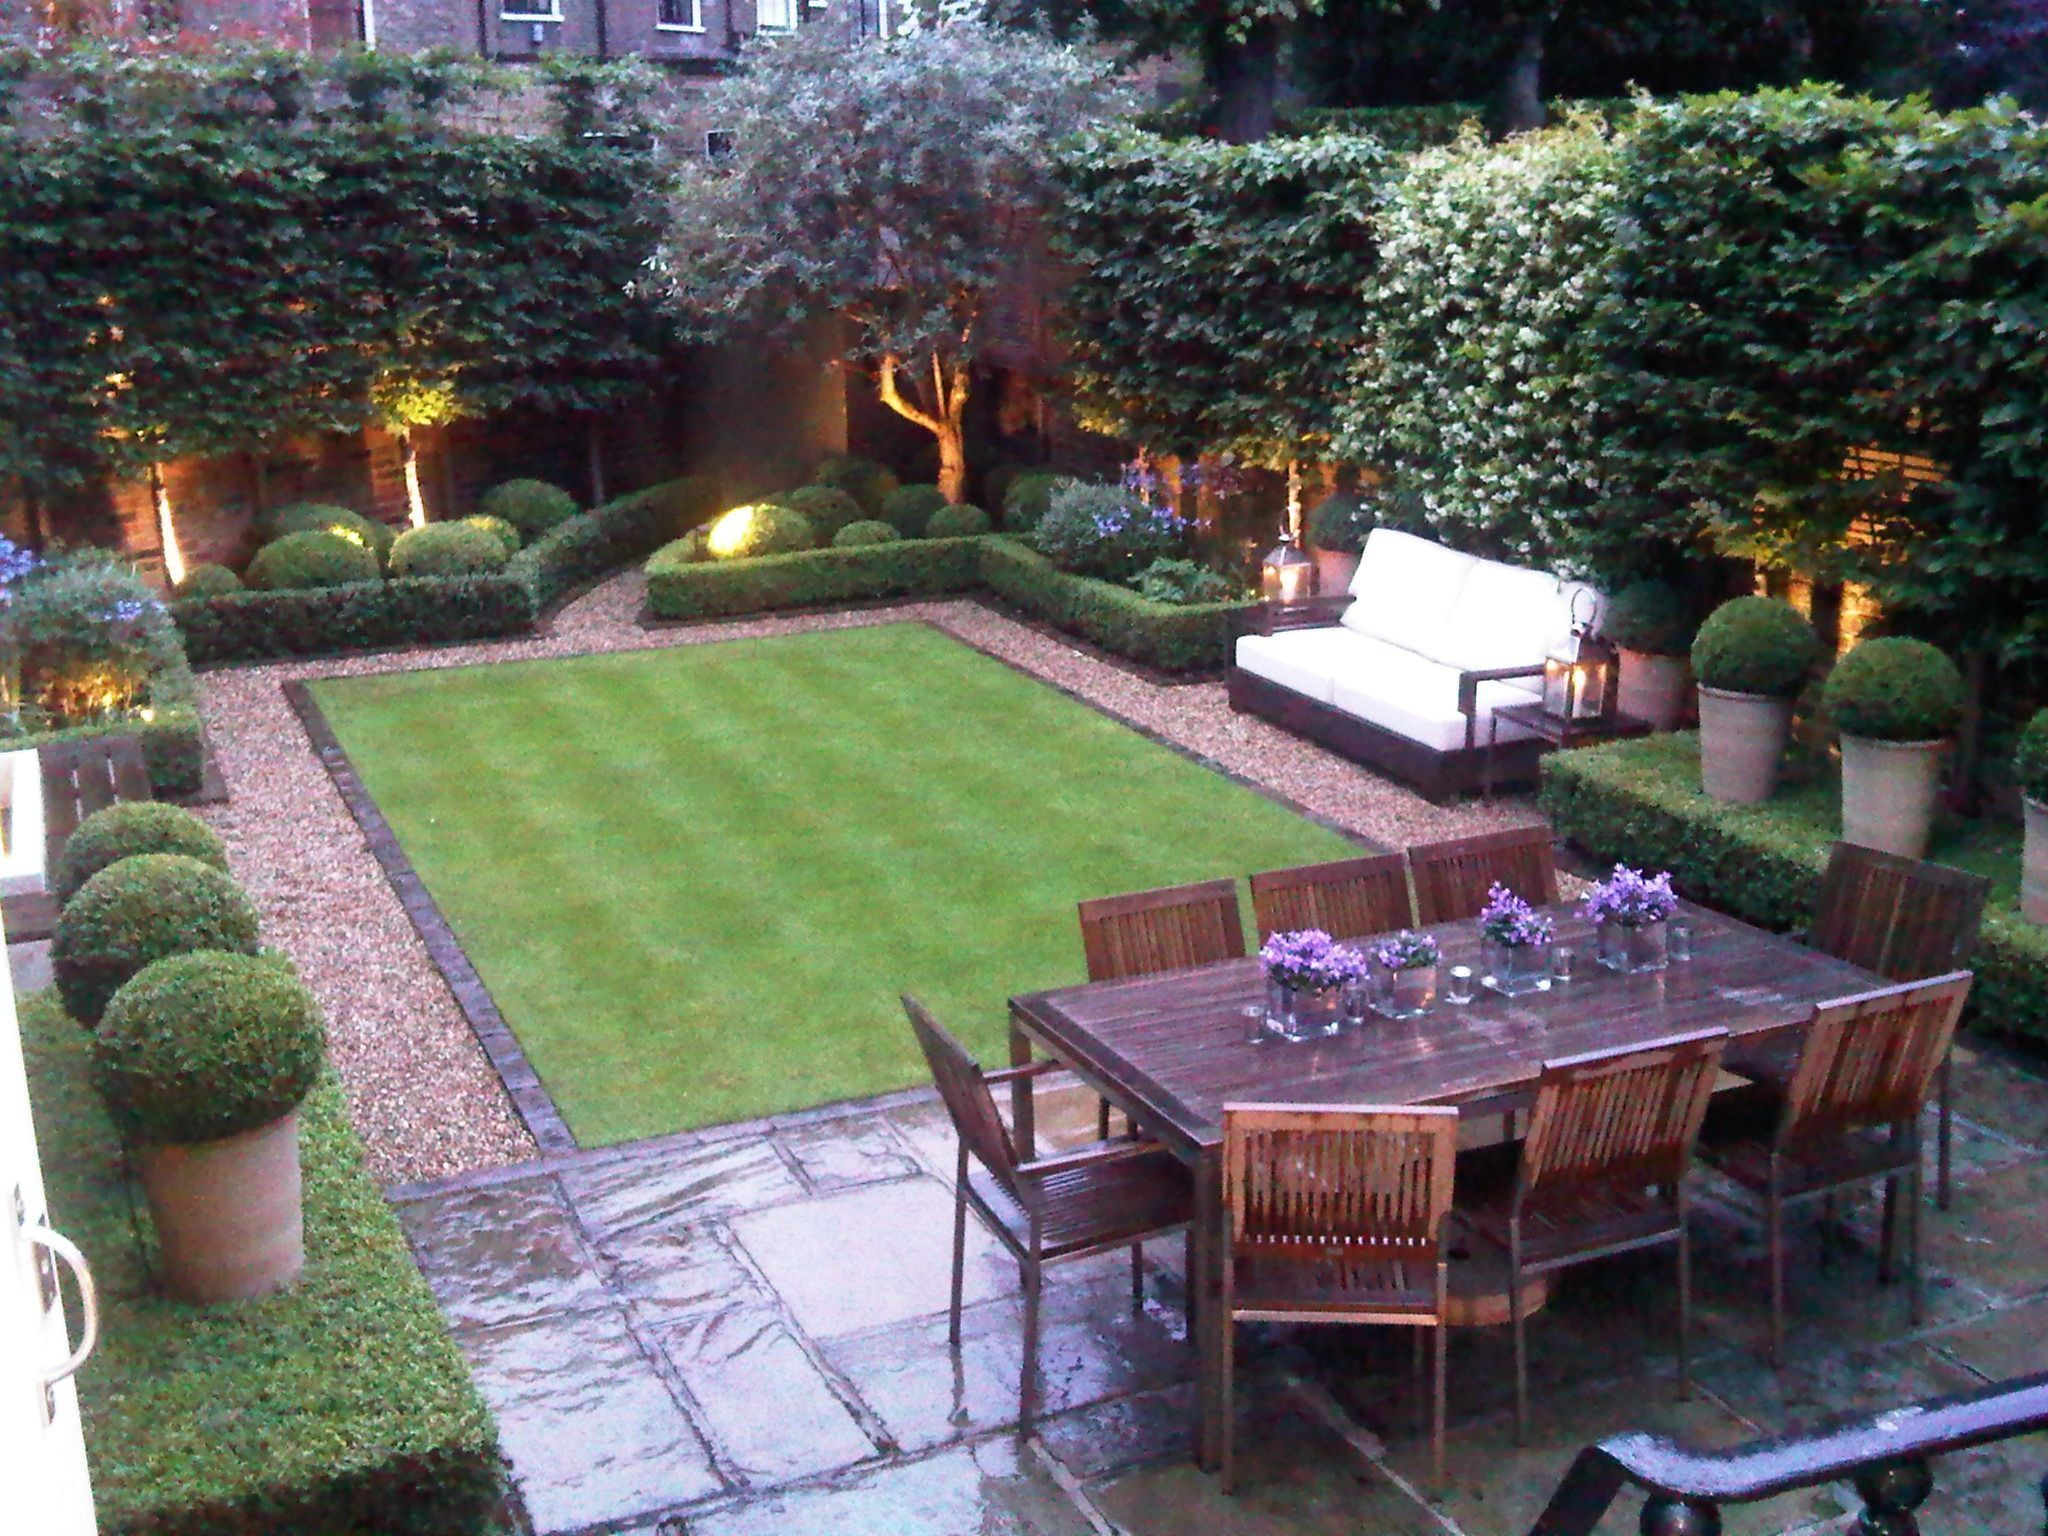 16 Landscape Design Ideas For Small Backyards Most Of The Creative And Also Sweetes Backyard Landscaping Plans Small Backyard Gardens Courtyard Gardens Design Backyard garden ideas for small yards